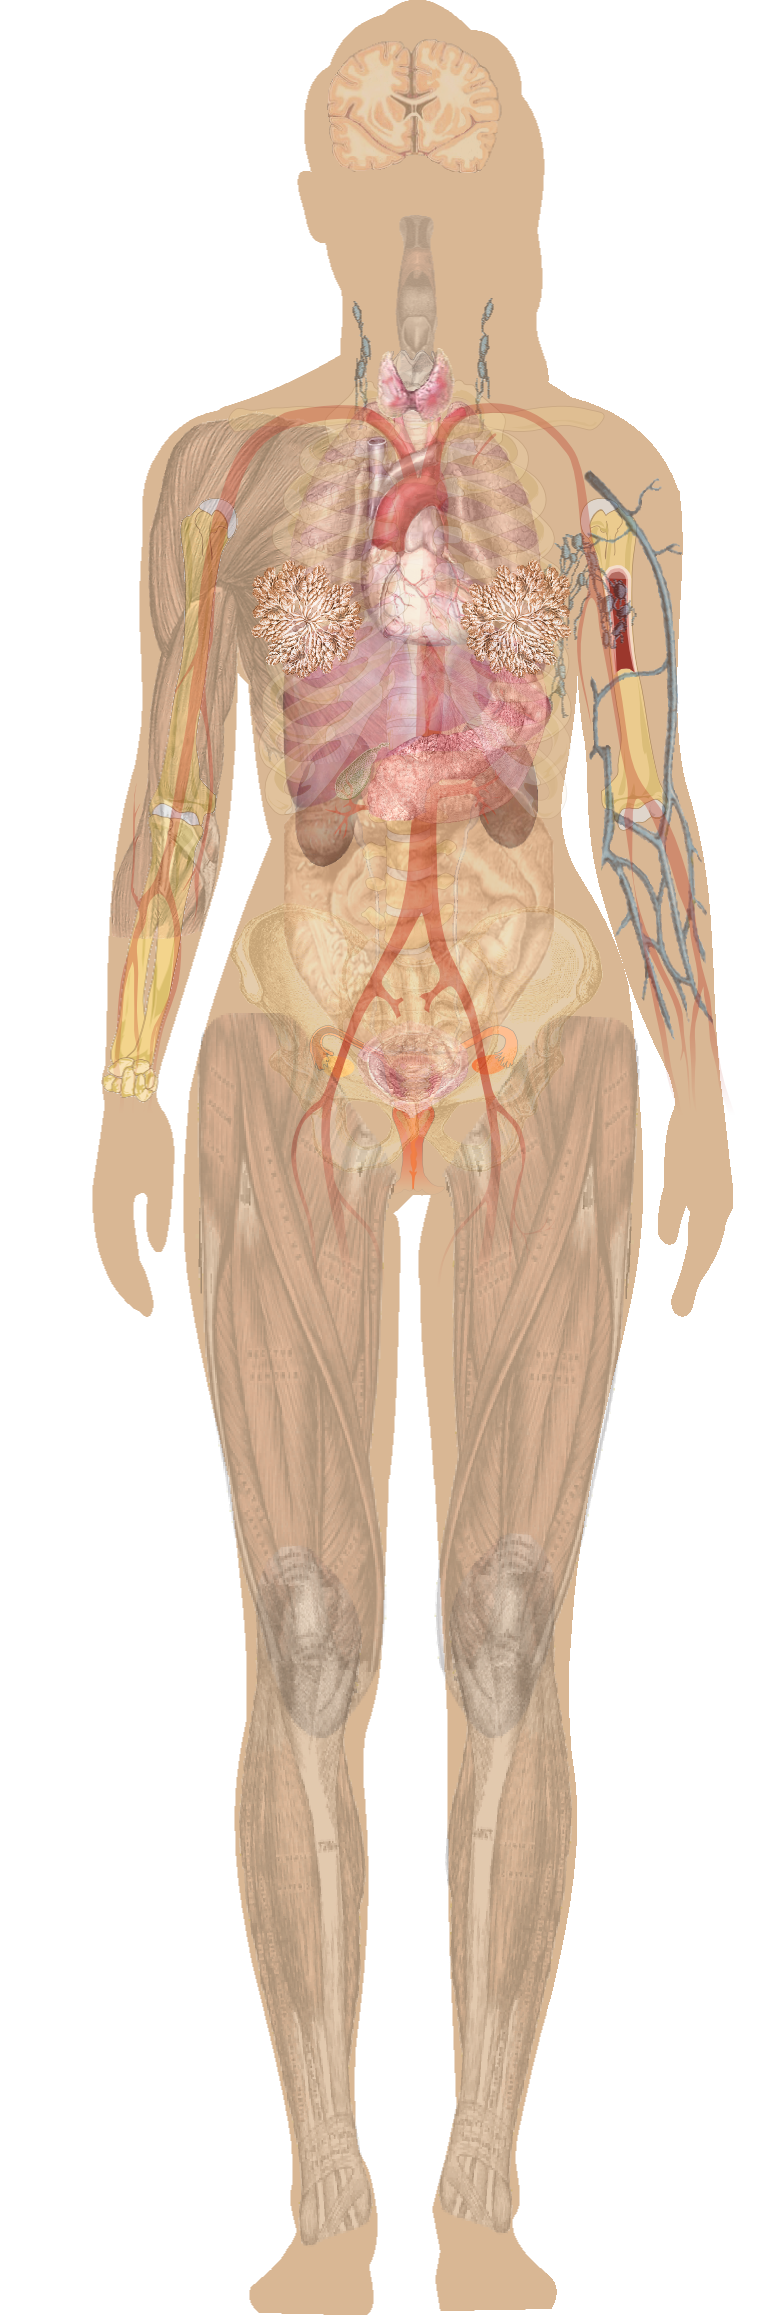 Human Body Organs Female